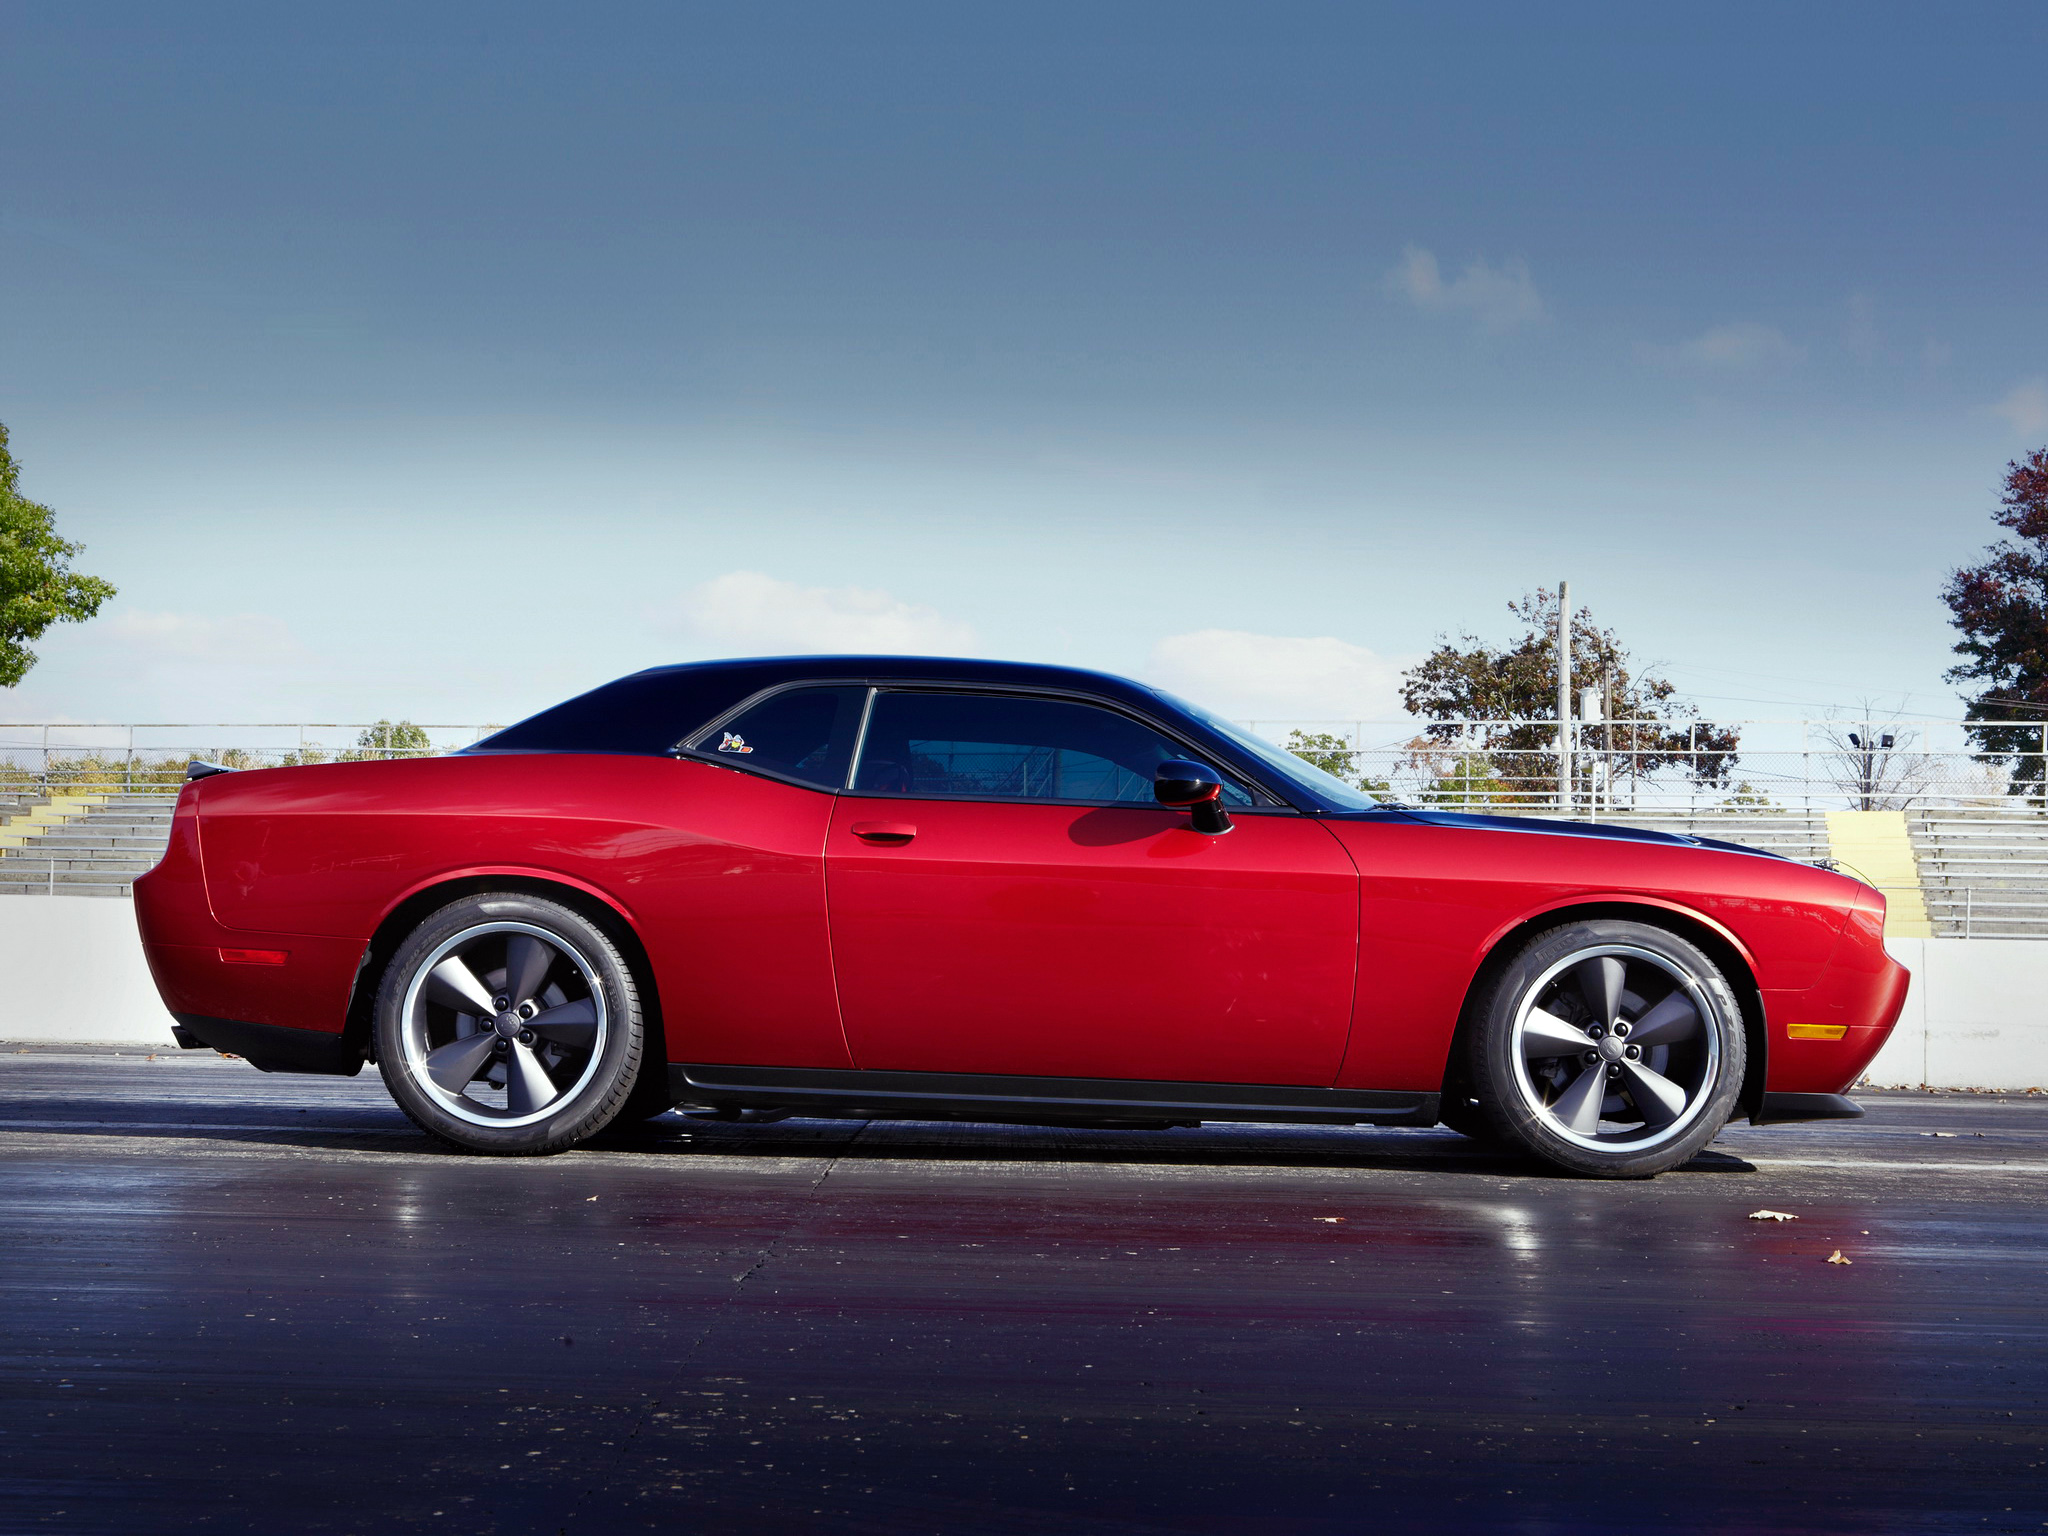 2014 dodge challenger r t scat package 3 muscle tuning f wallpaper 2048x1536 171084. Black Bedroom Furniture Sets. Home Design Ideas